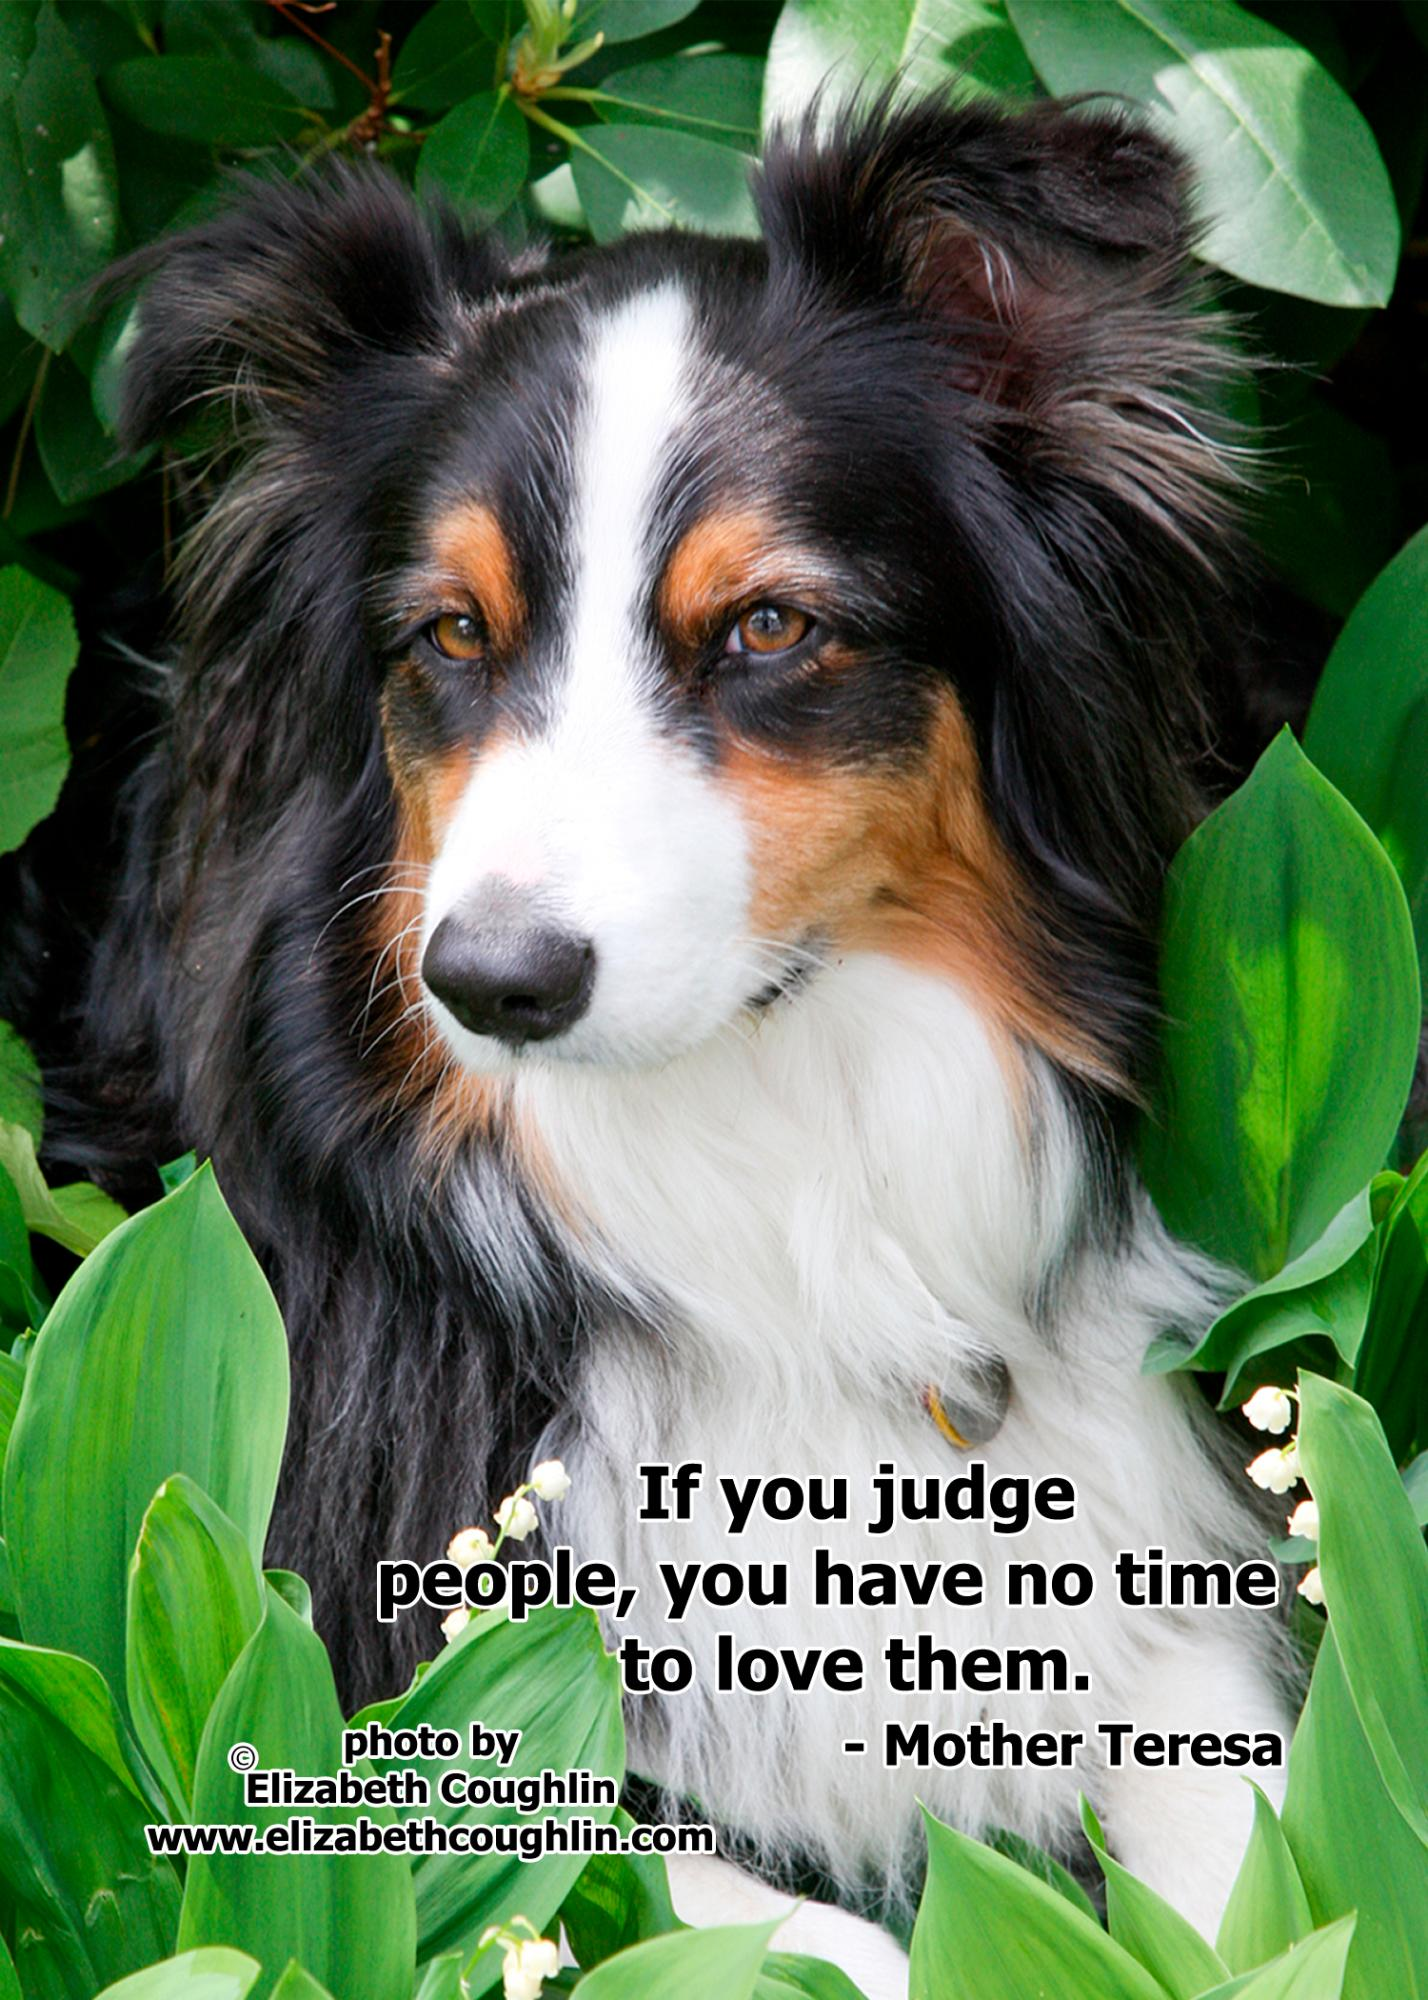 DOG_ifyoujudge80446.jpg